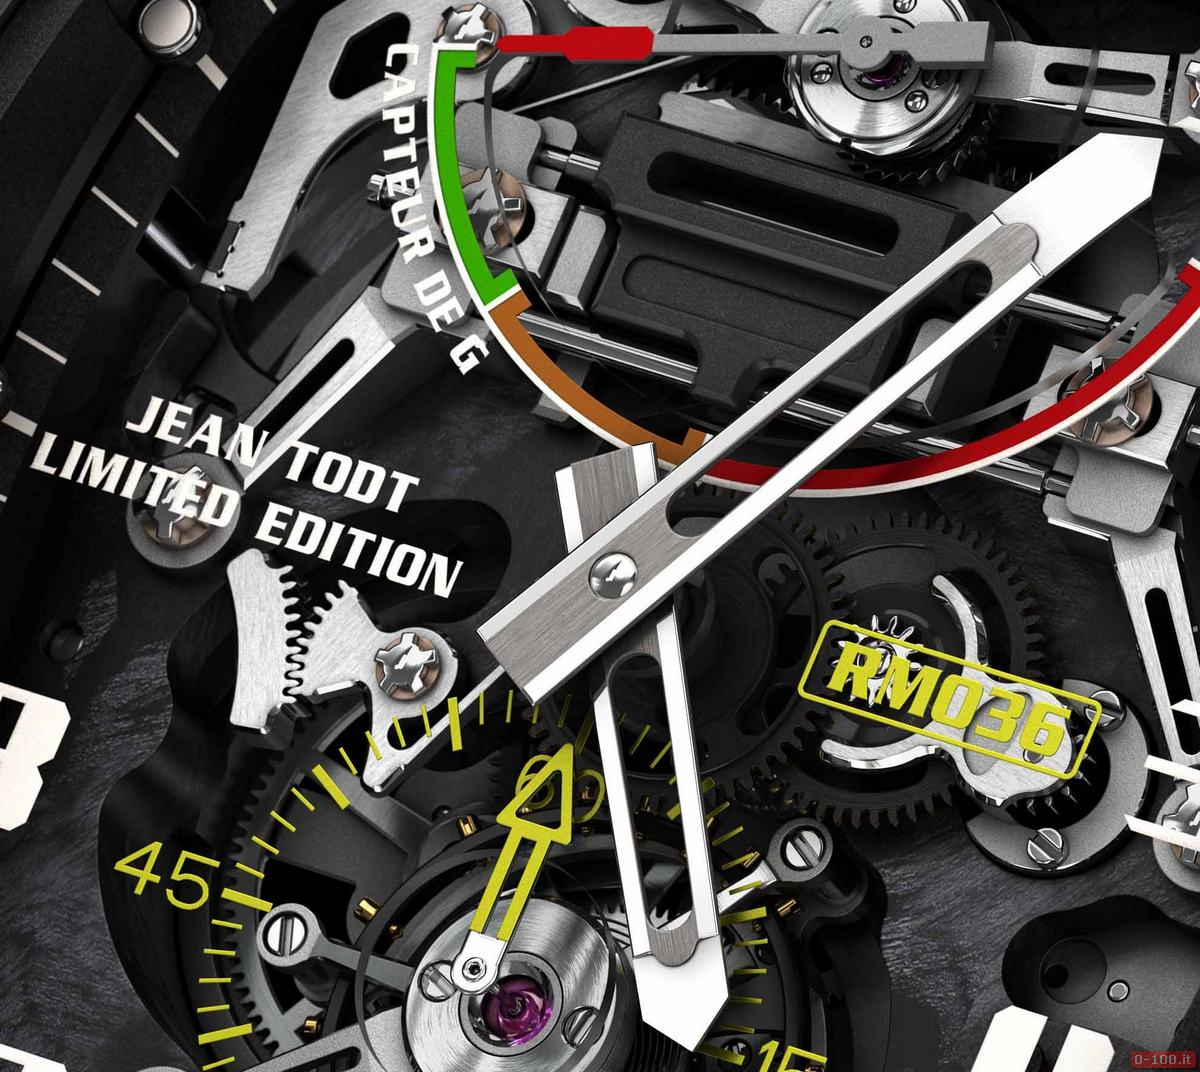 Richard Mille 036 Jean Todt Limited Edition_0-1003